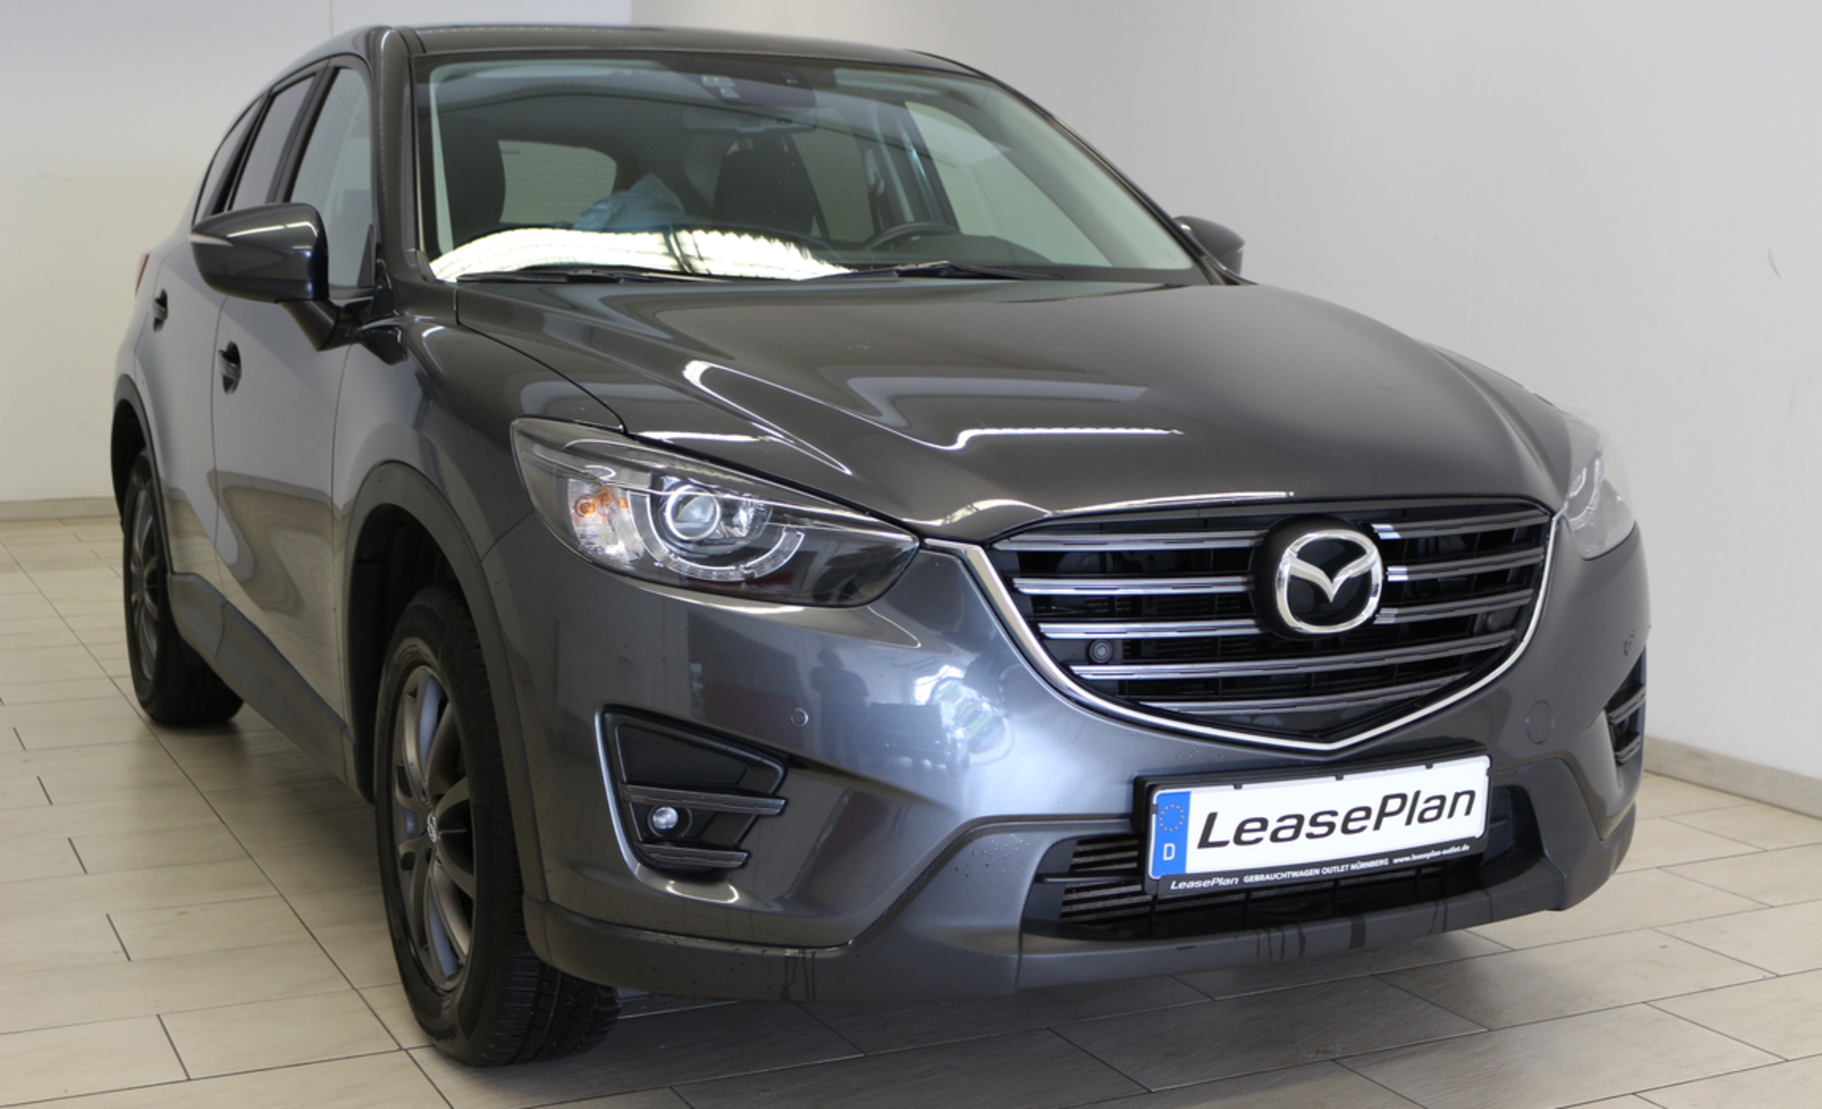 Mazda CX-5 SKYACTIV-D 150 Exclusive-Line (576465) detail1